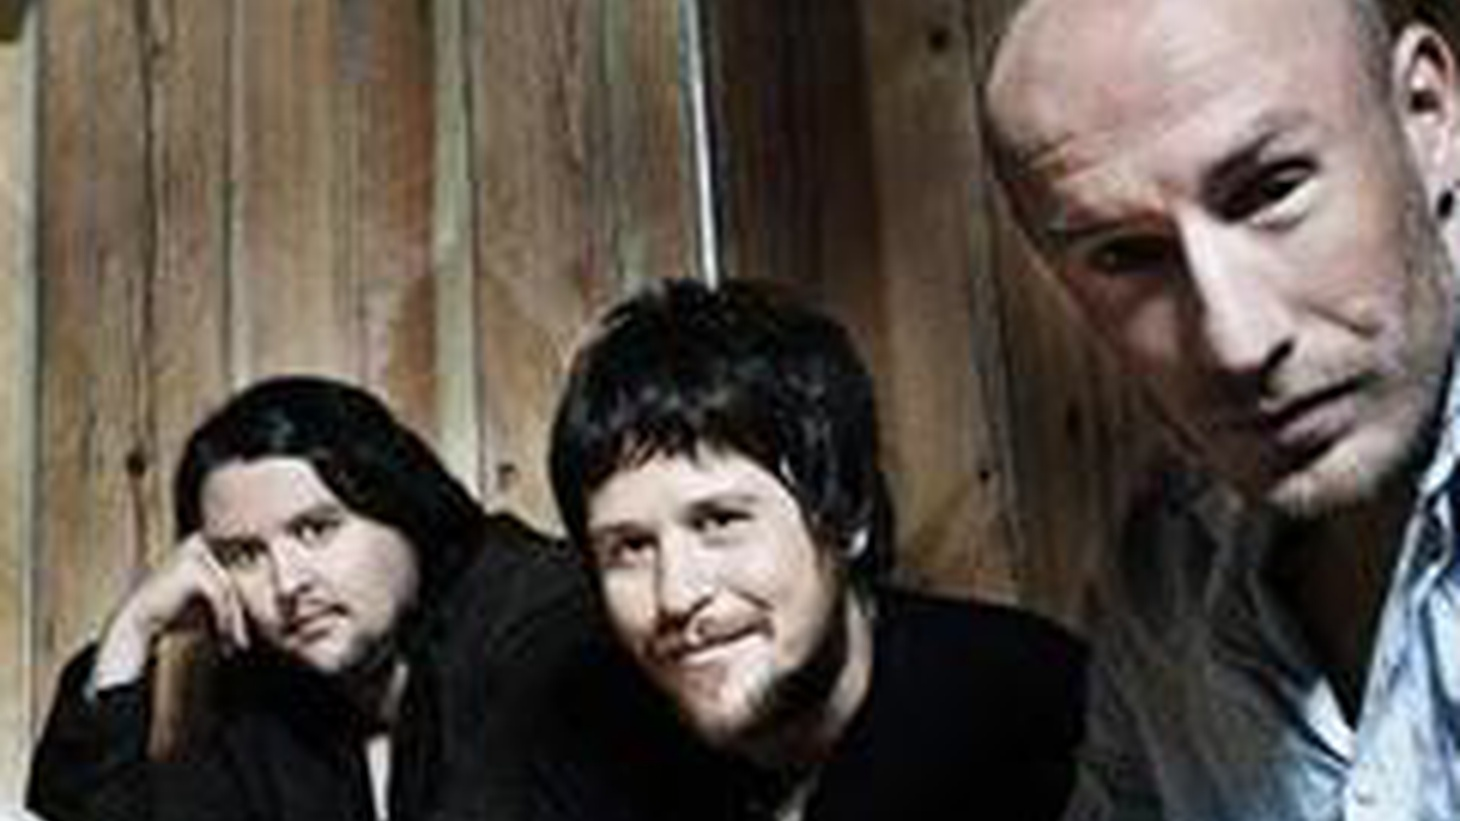 Manchester's Elbow are opening for chart toppers Coldplay and U2 this summer for good reason -- they perform beautiful ballads and rousing rock songs, which we will hear on Morning Becomes Eclectic at 11:15am.